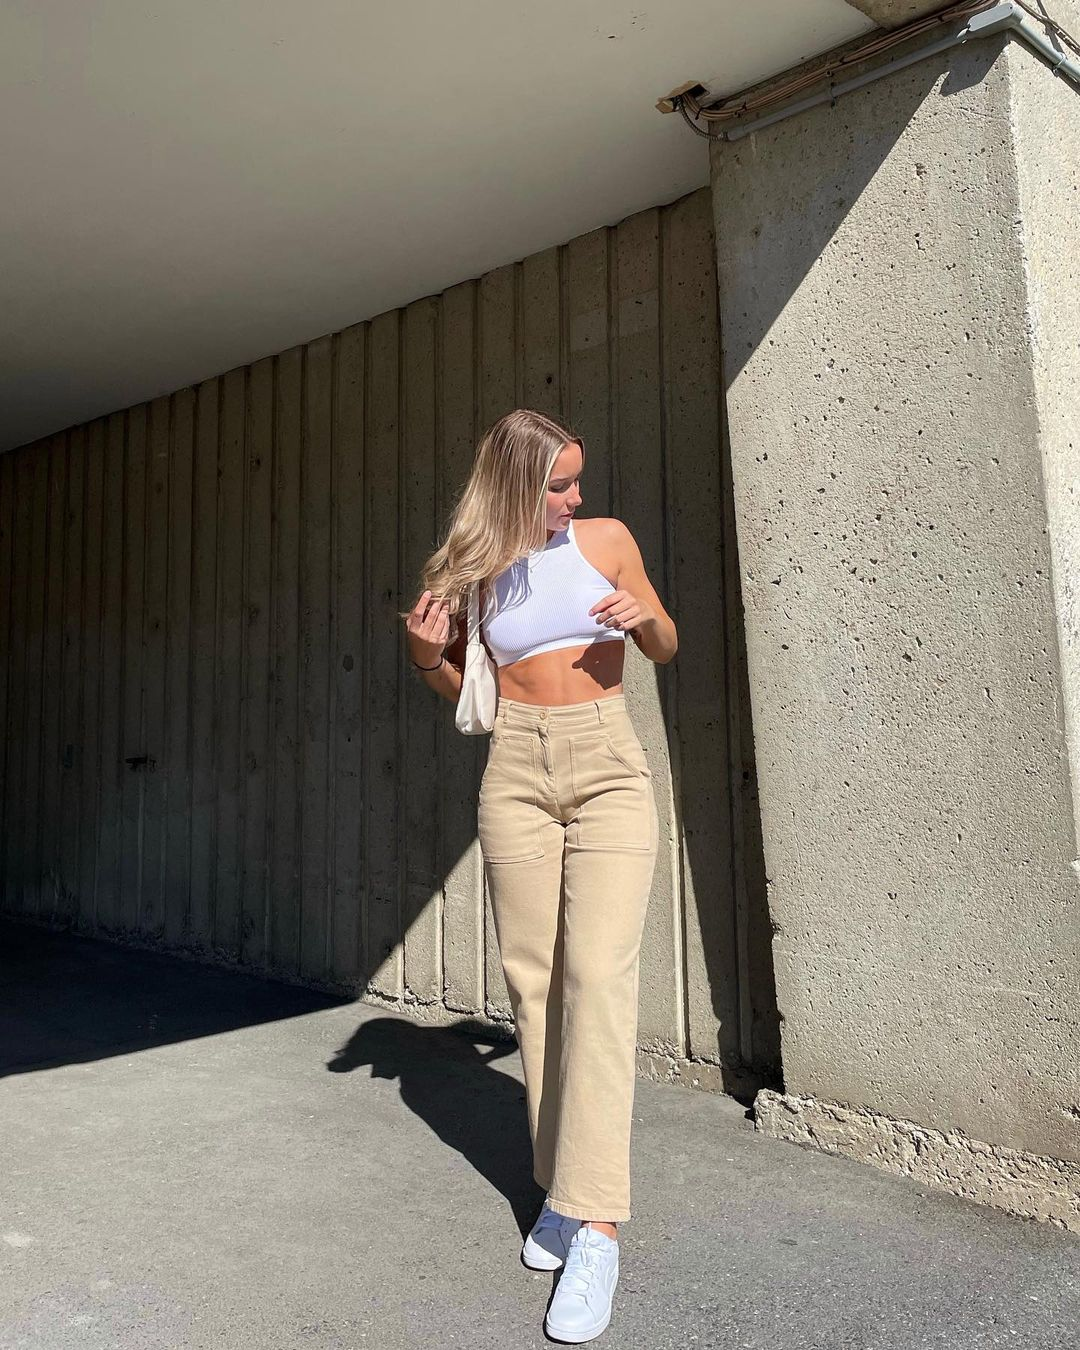 Amy-Shaver-Wallpapers-Insta-FIt-Bio-2